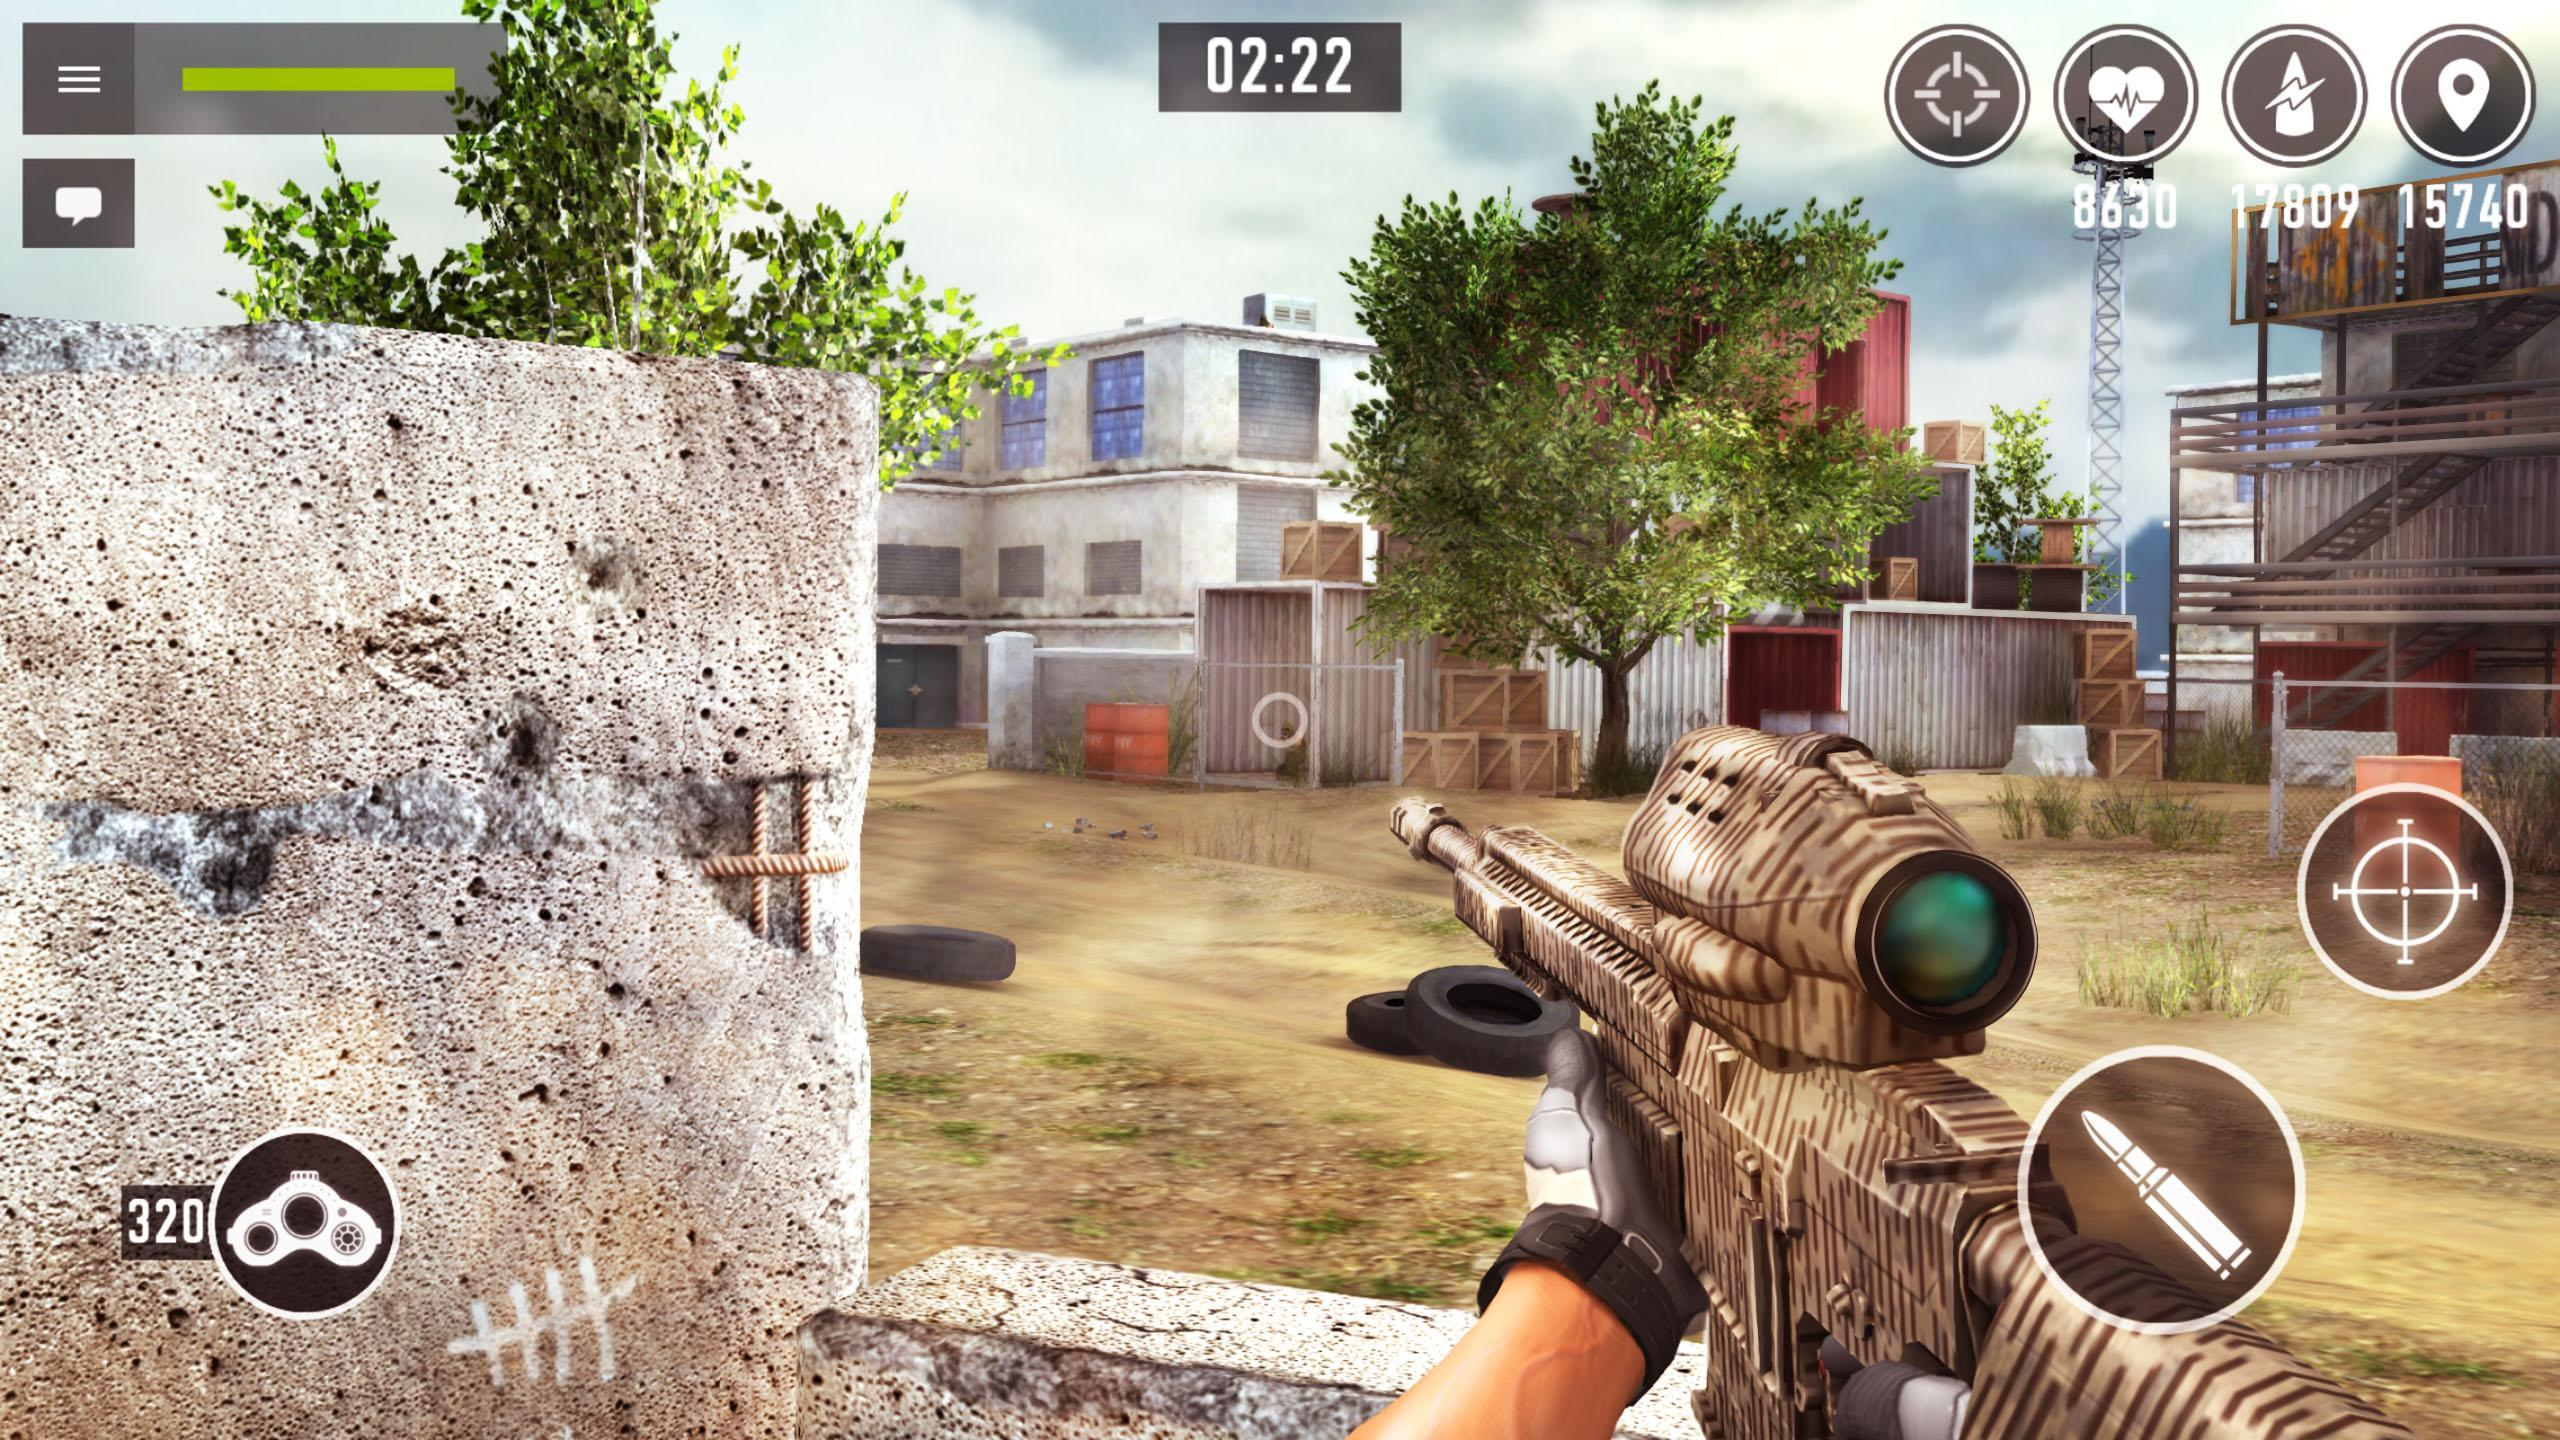 Sniper Arena PvP Army Shooter 1.2.8 Screenshot 15